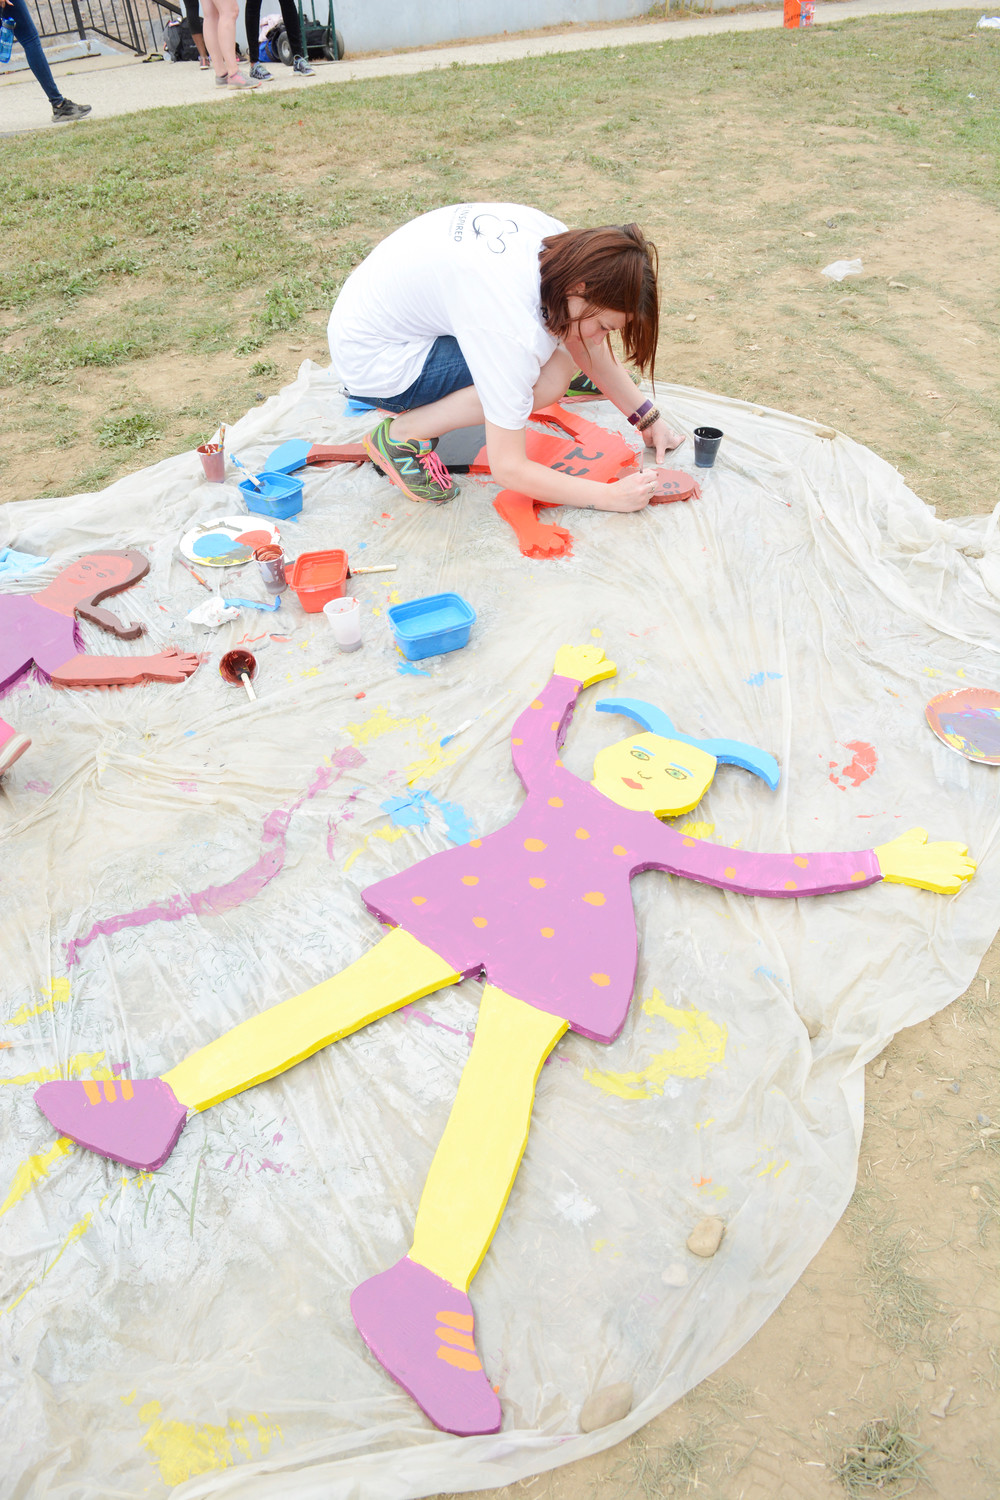 A volunteer paints large cutouts and other decorative items for the new playground at the Lawrence Hickey Center for Child Development in the Bronx Oct. 5.